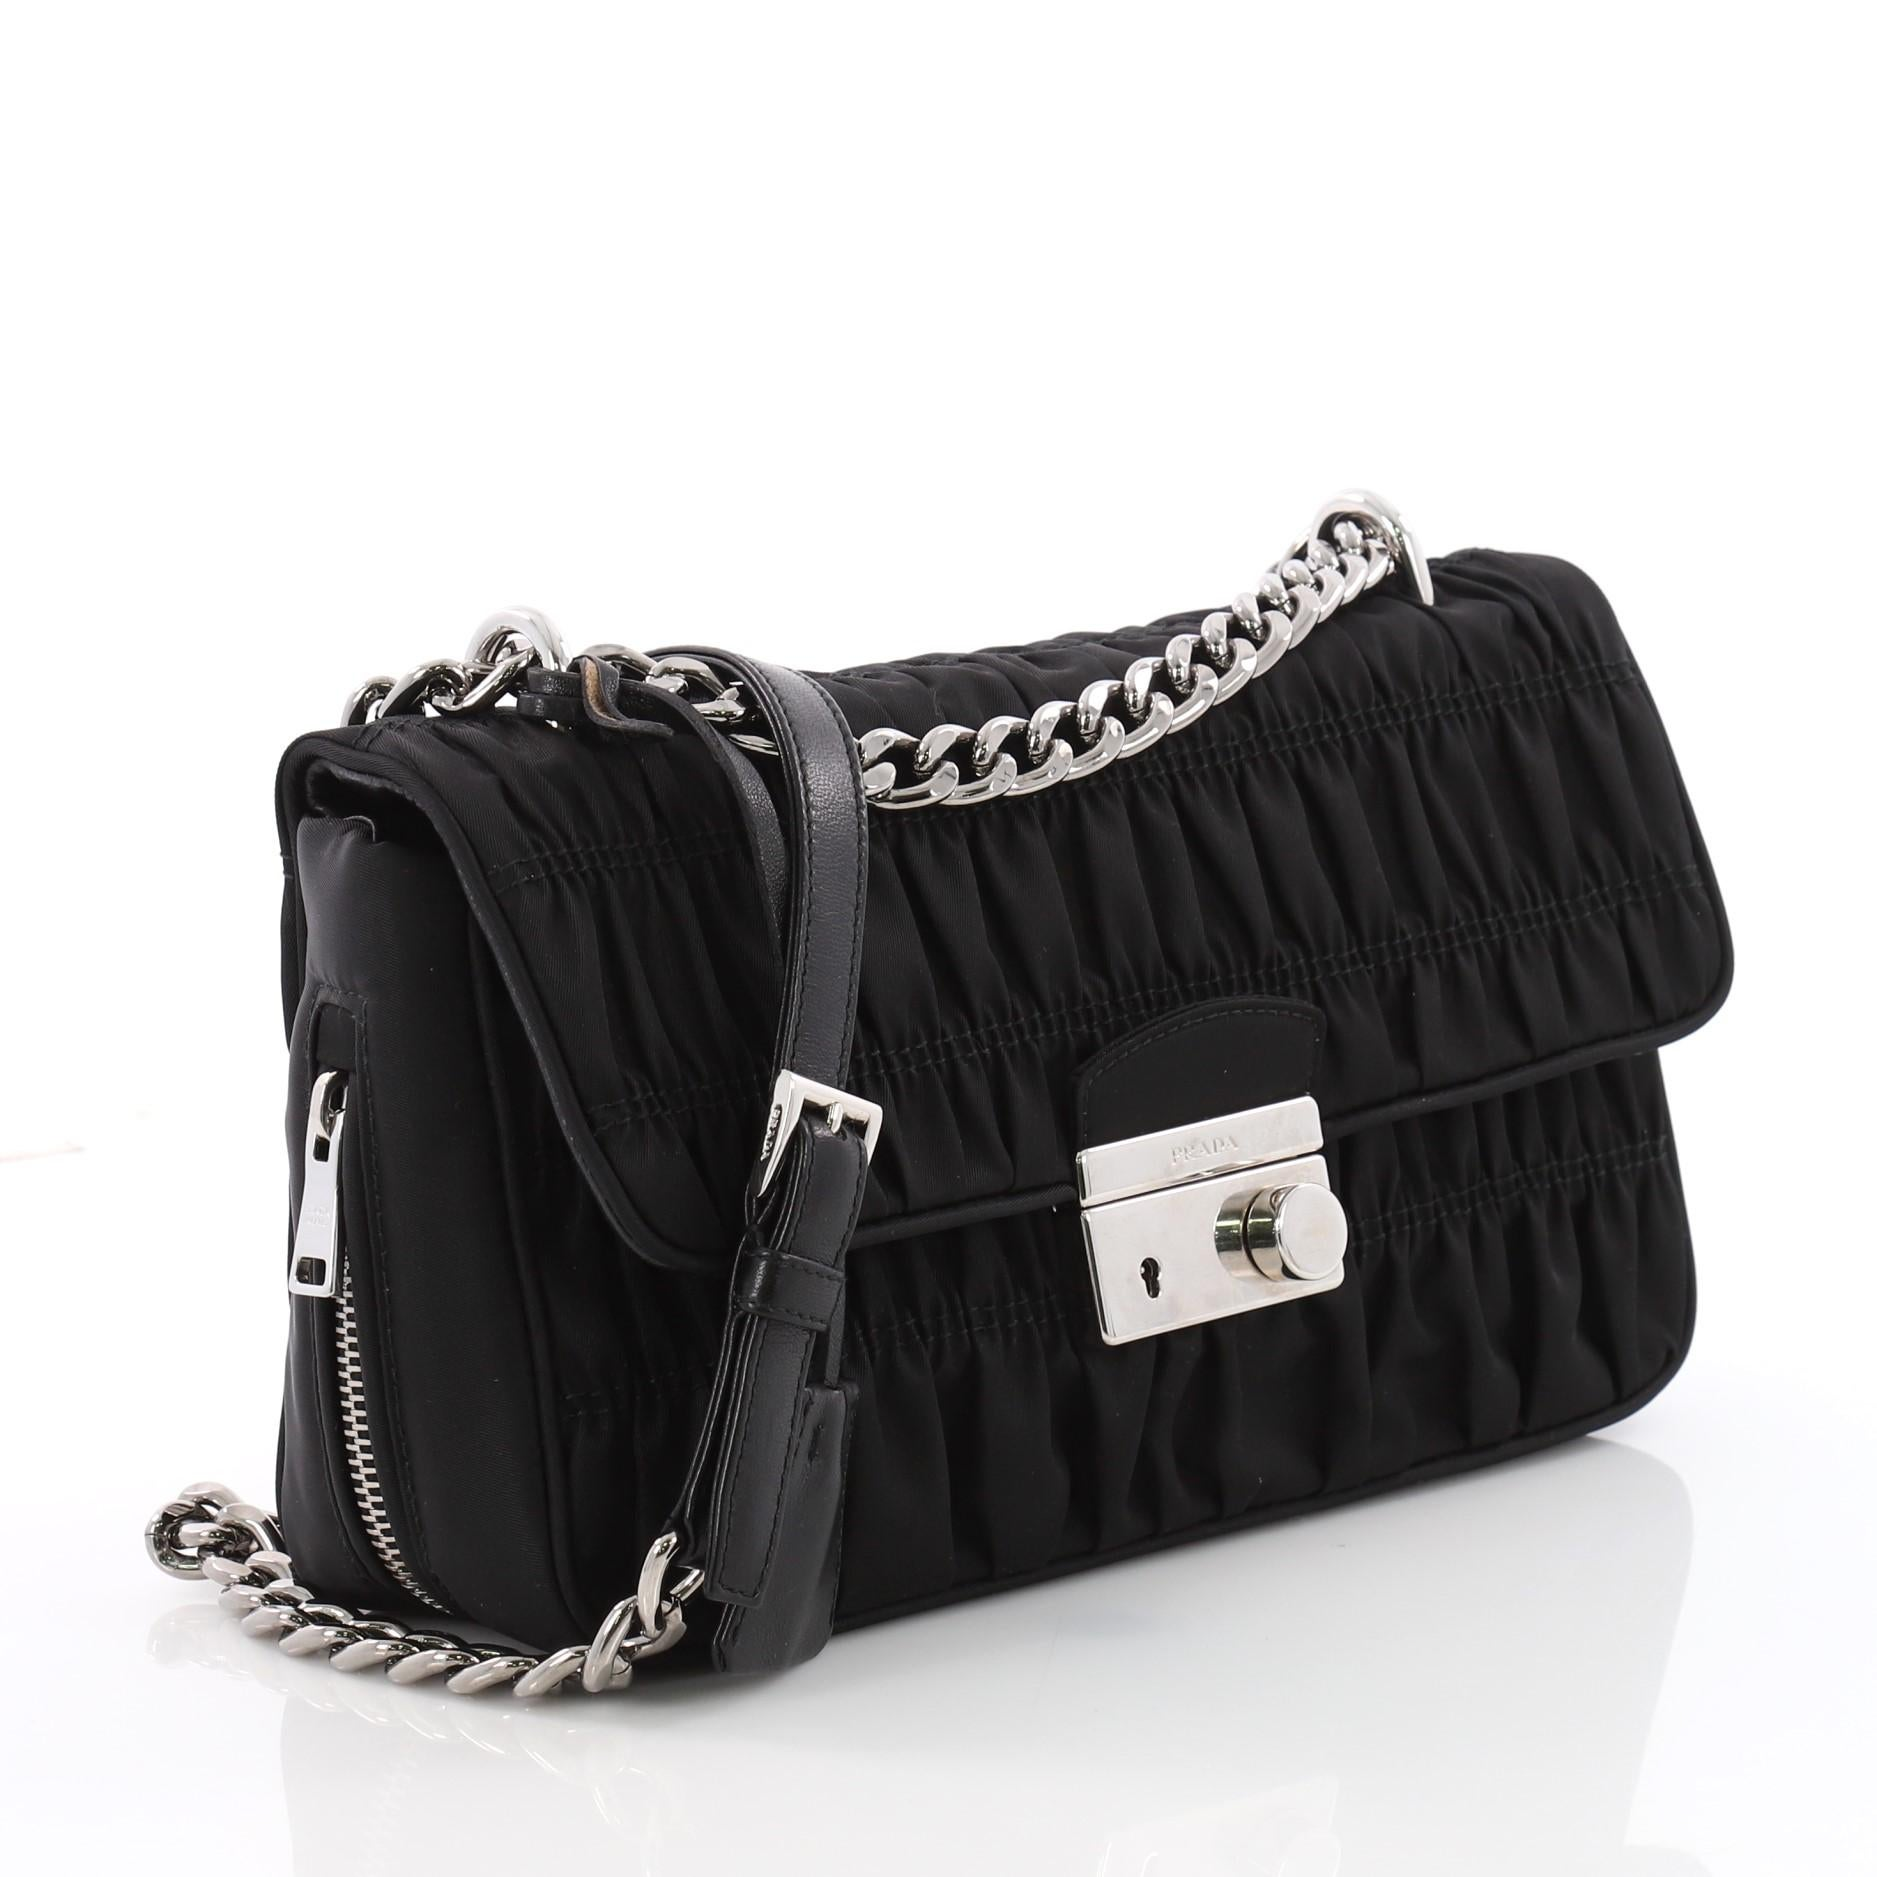 9ba30848f6f9 ... cheapest black prada sound shoulder bag tessuto gaufre small for sale  312bc af89f